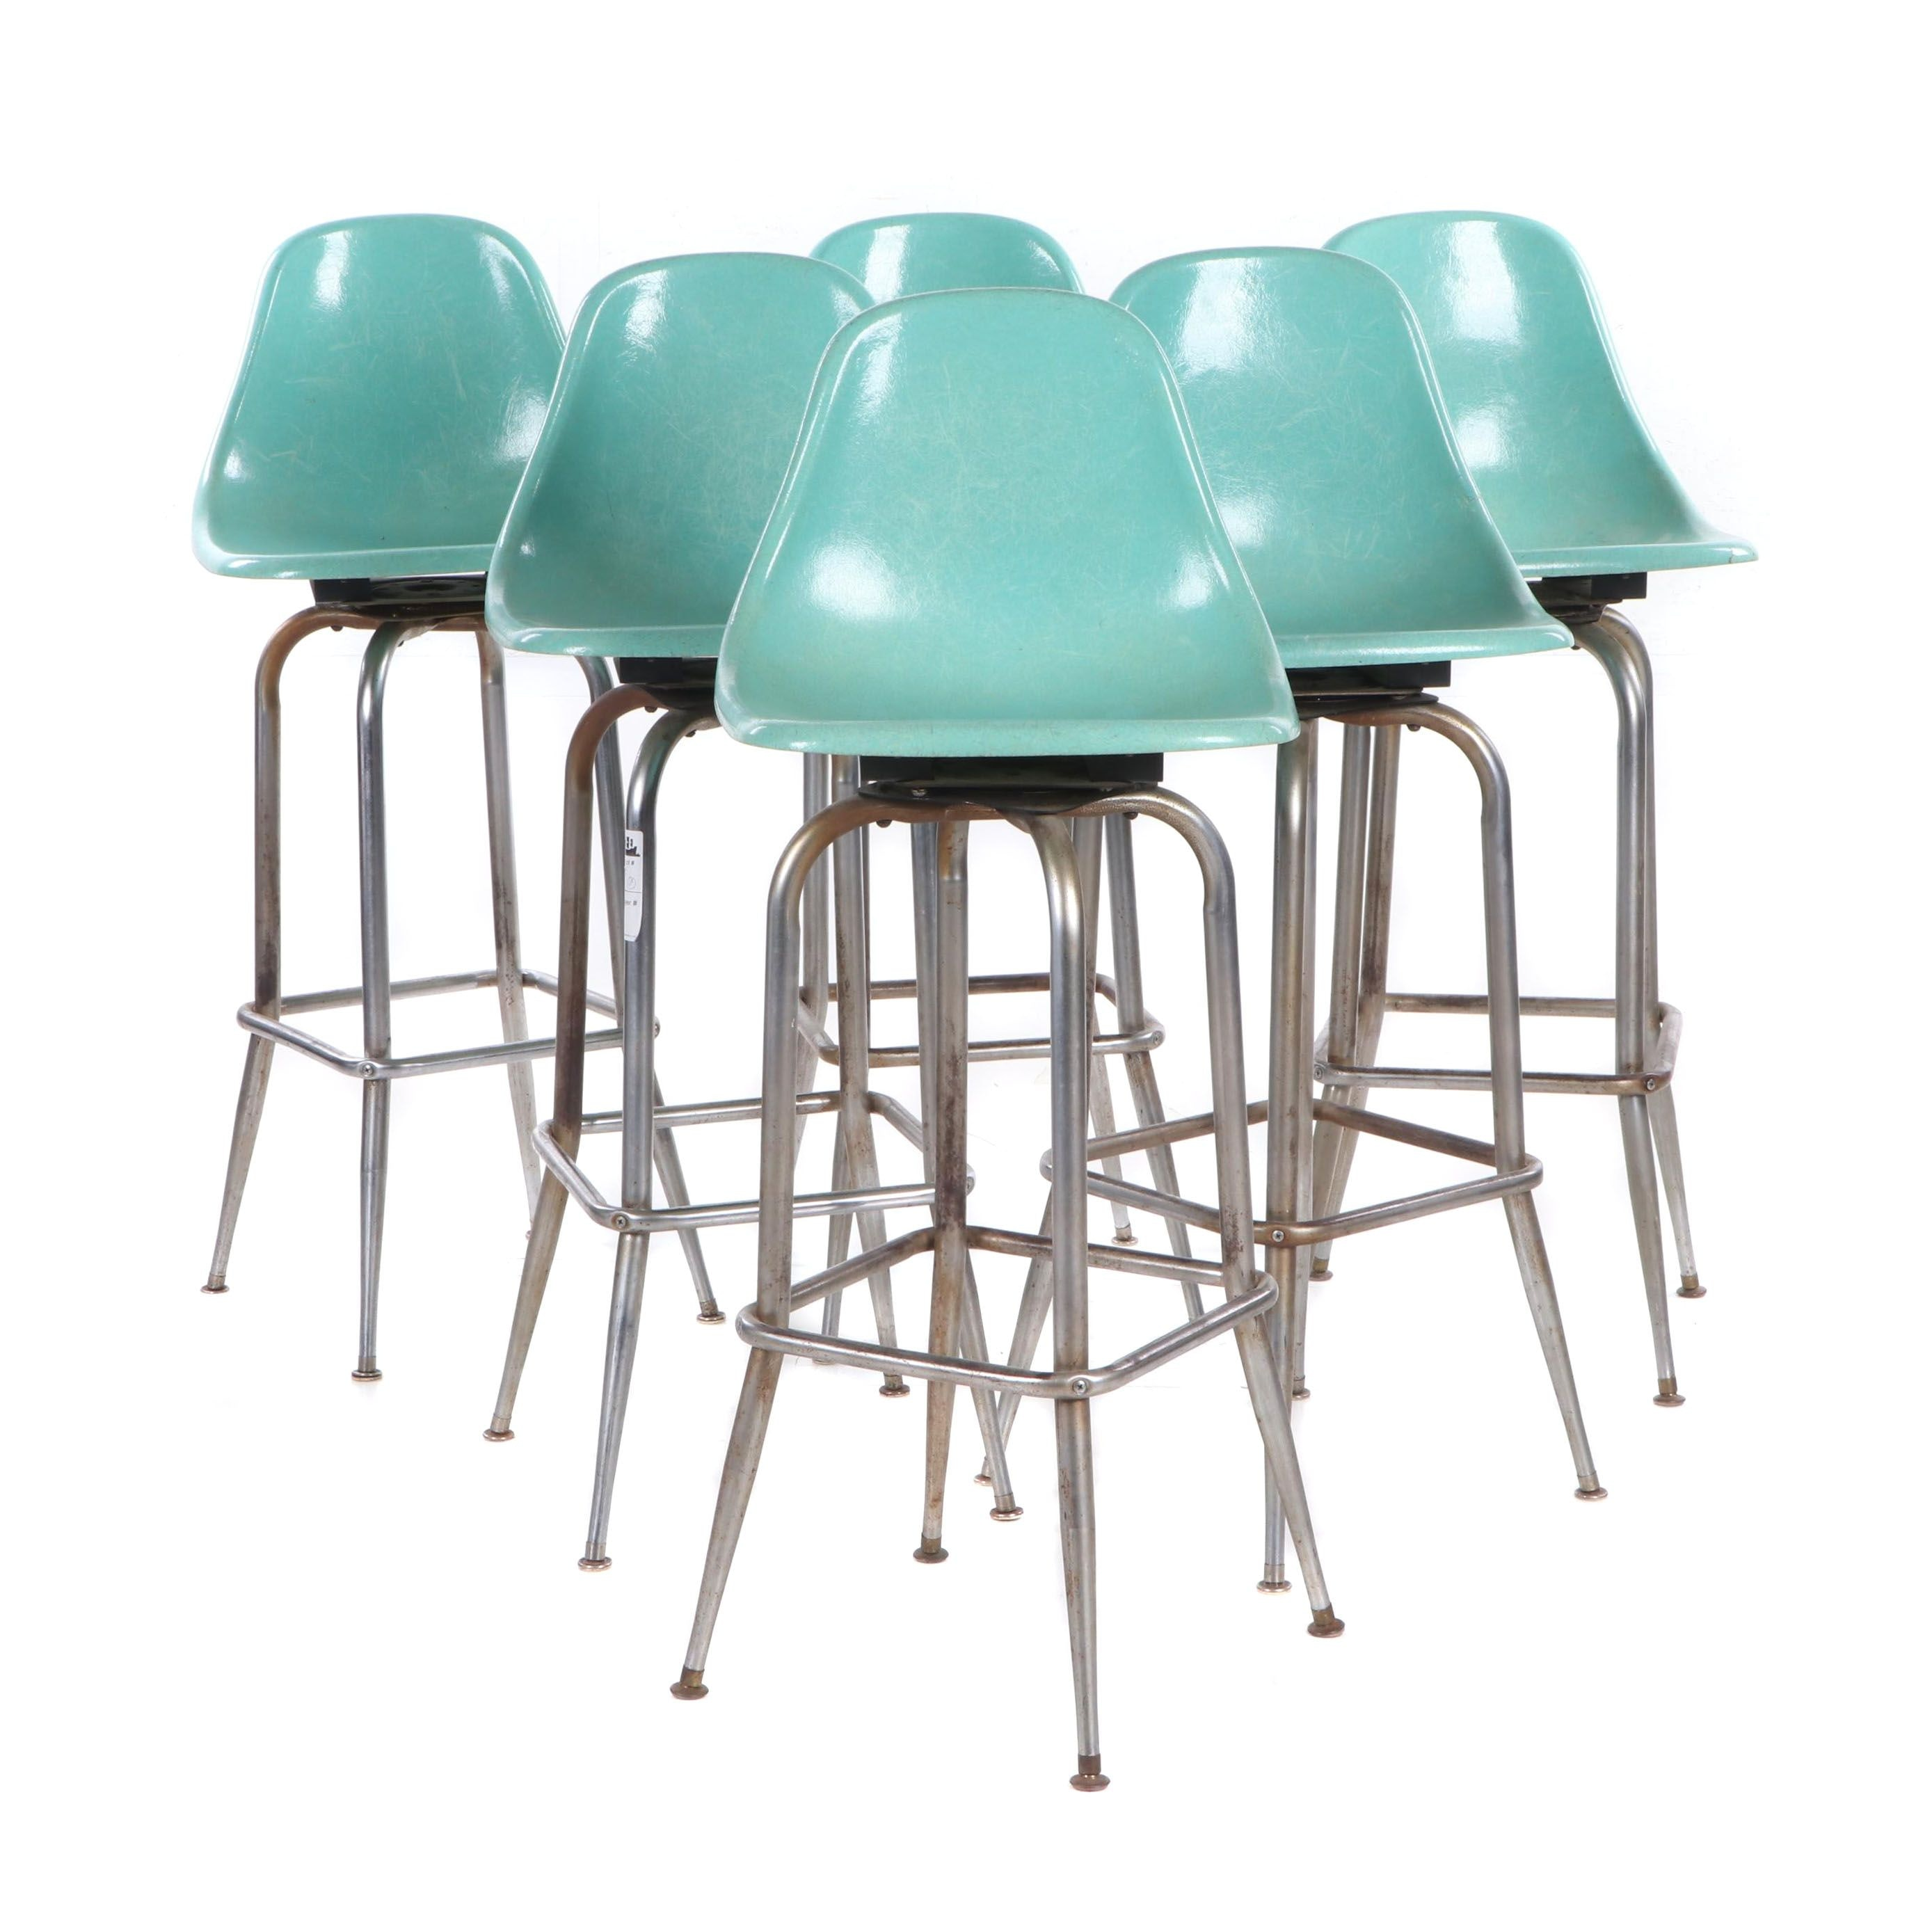 "Charles Eames Style Fiberglass ""Shell"" Swivel Counter Stools, Mid-20th Century"